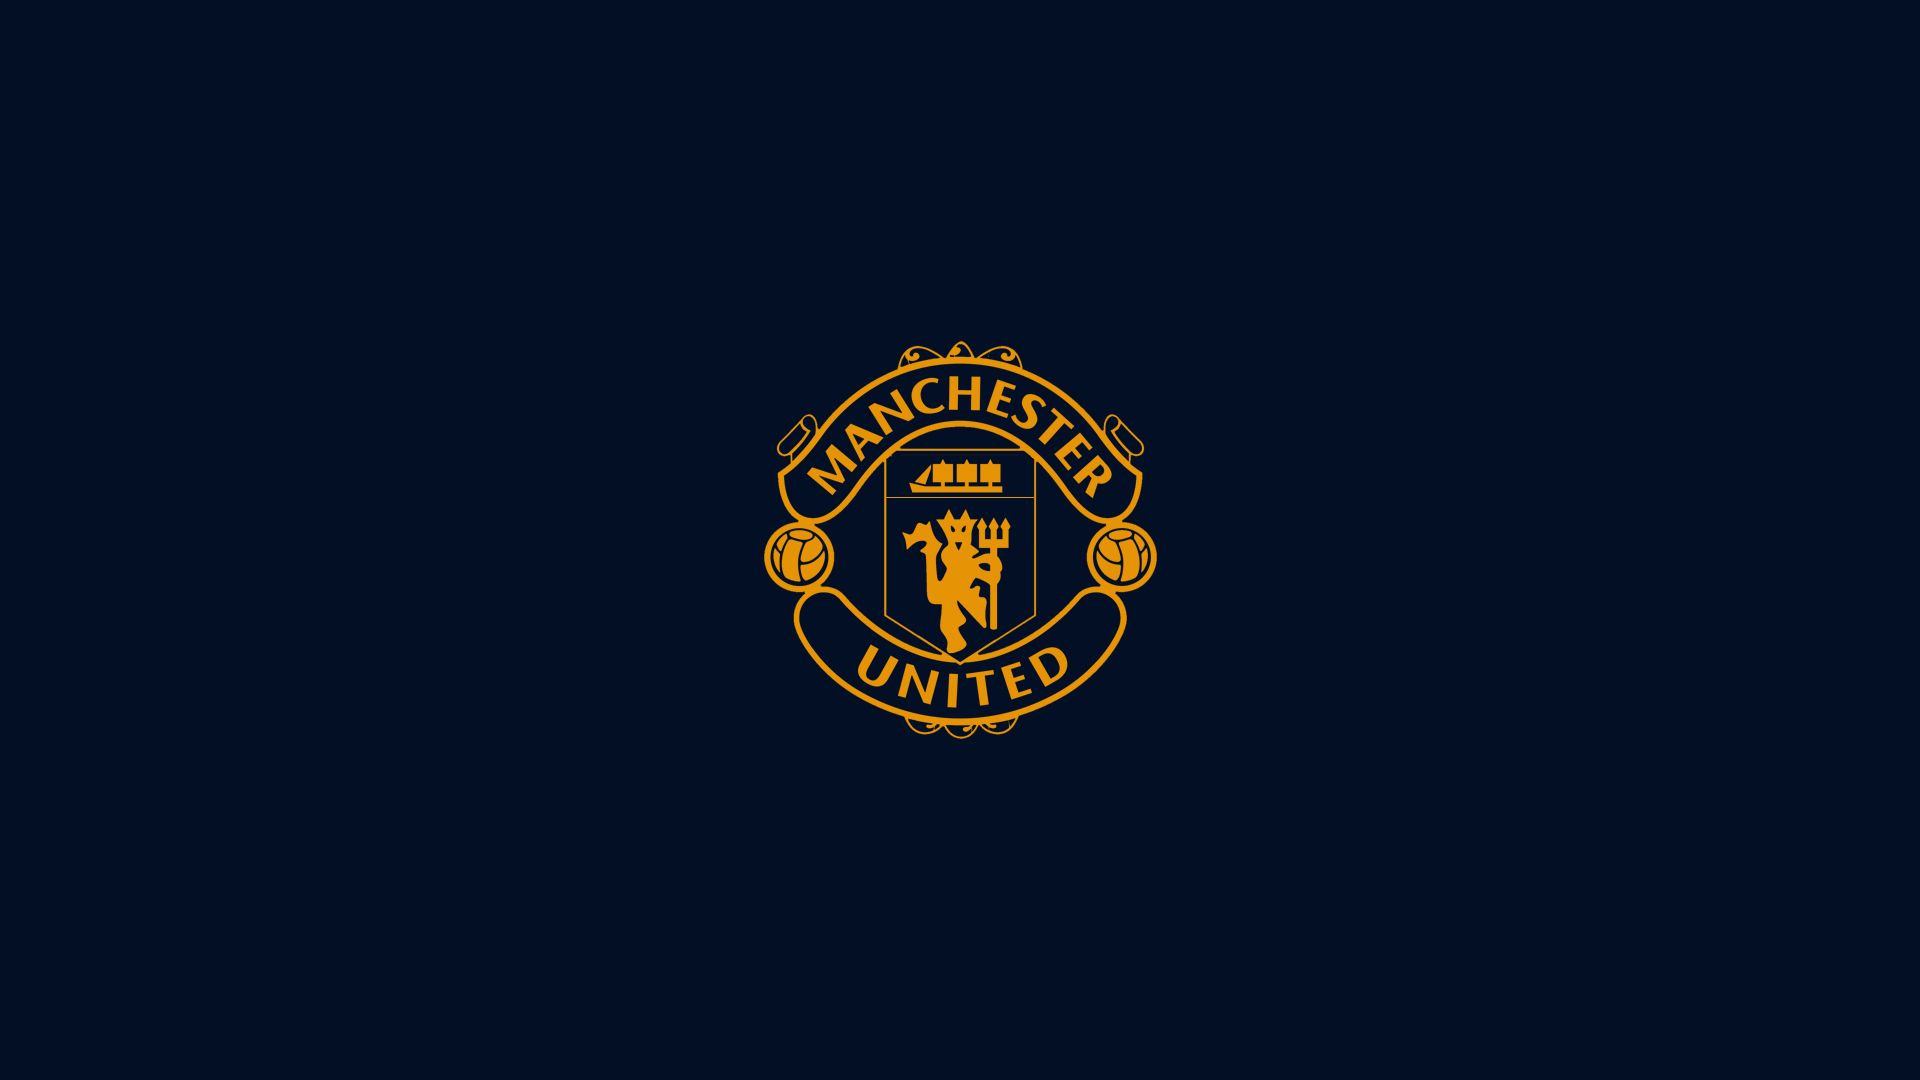 Manchester United Wallpaper 1920 1080 Manchester United Hd